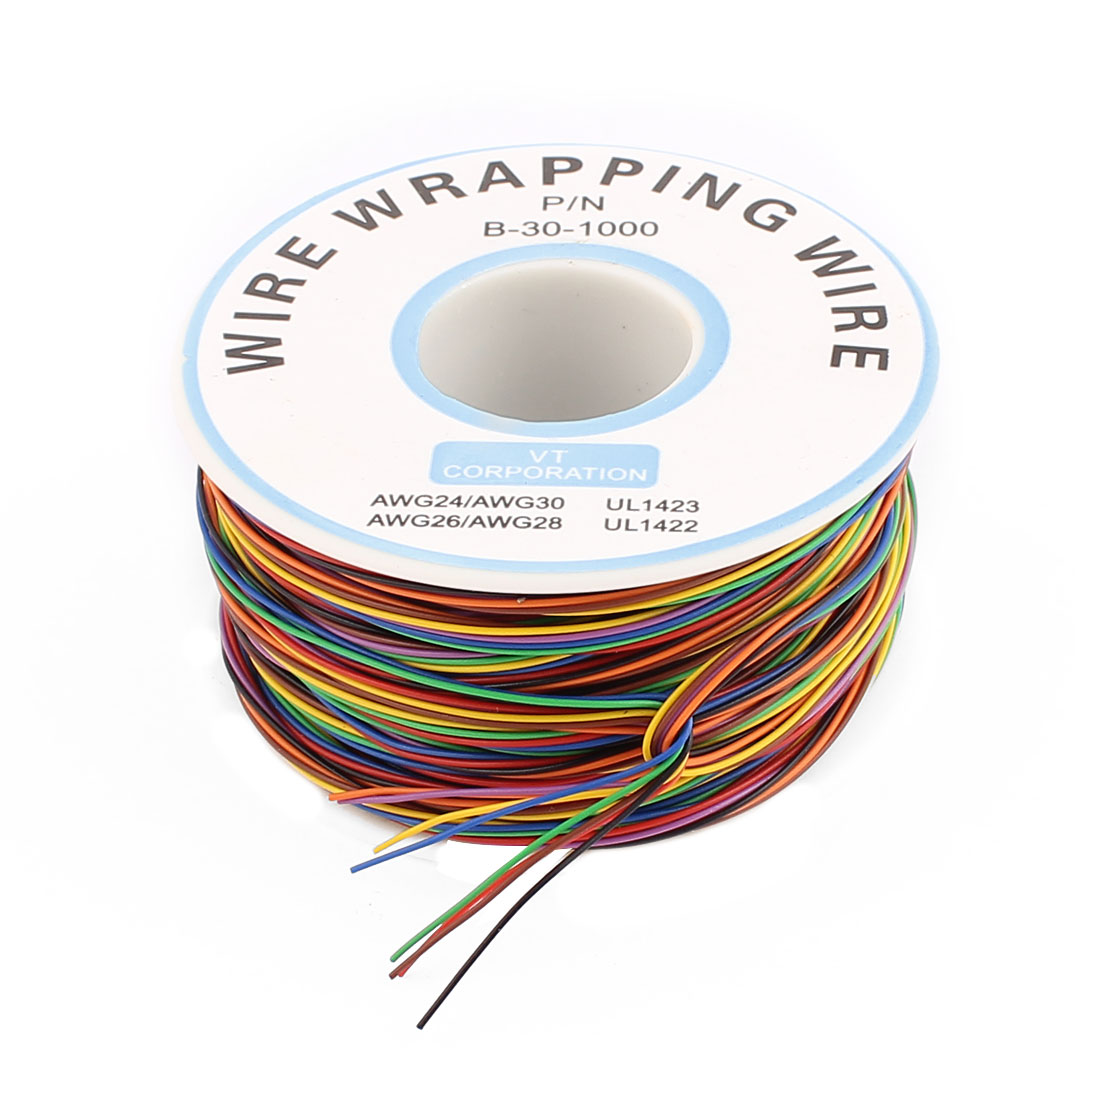 High Temperature Resistant Wraping Wire B-30-1000 Mixed Colour